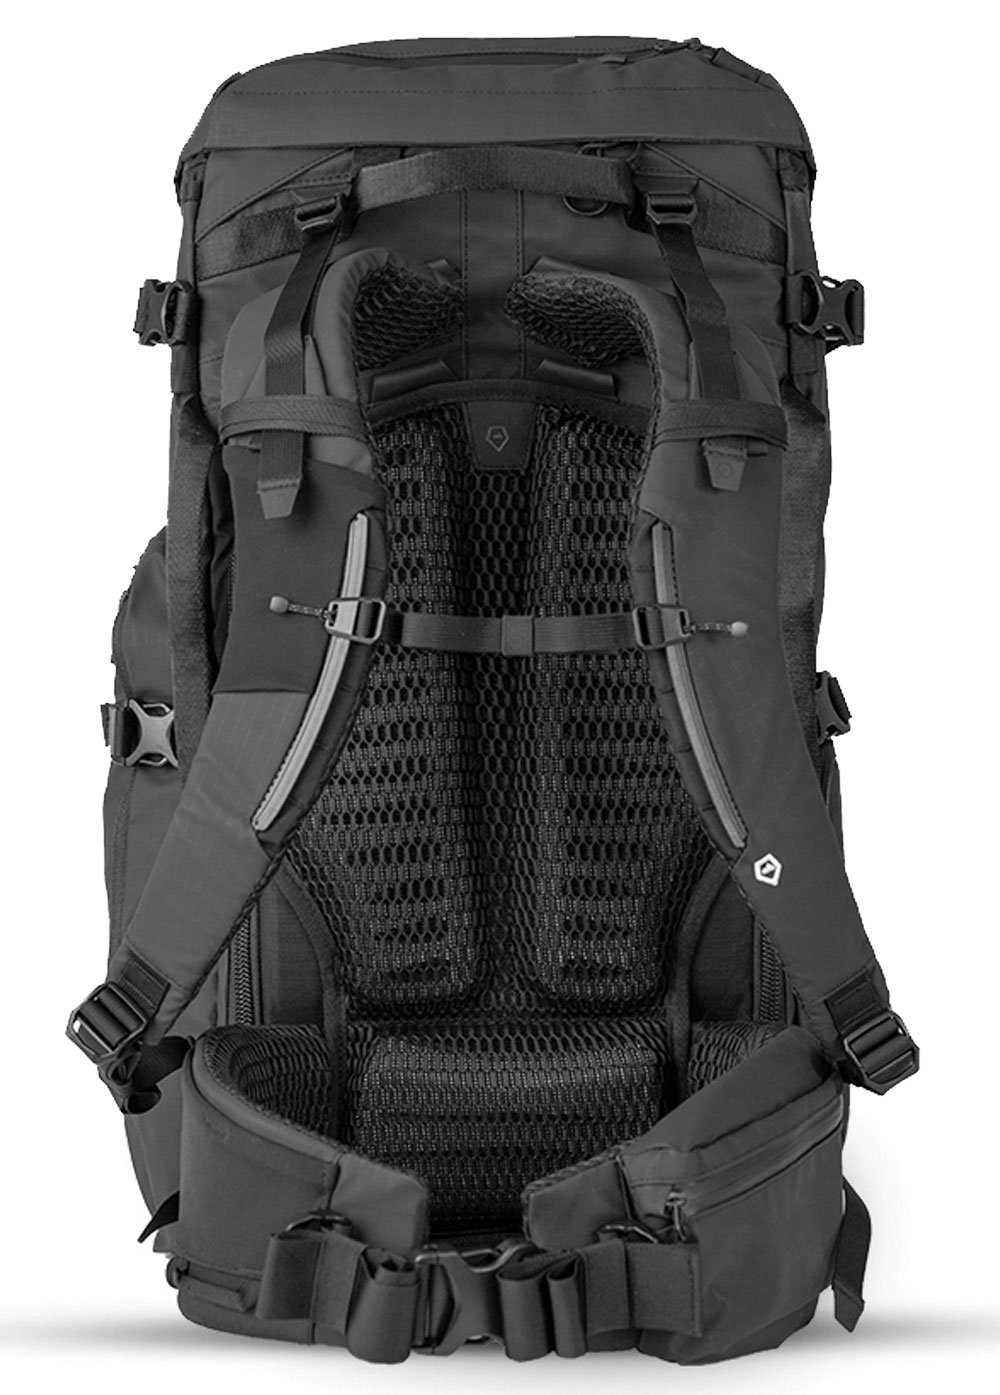 The FERNWEH has padding and support straps to help evenly distribute weight